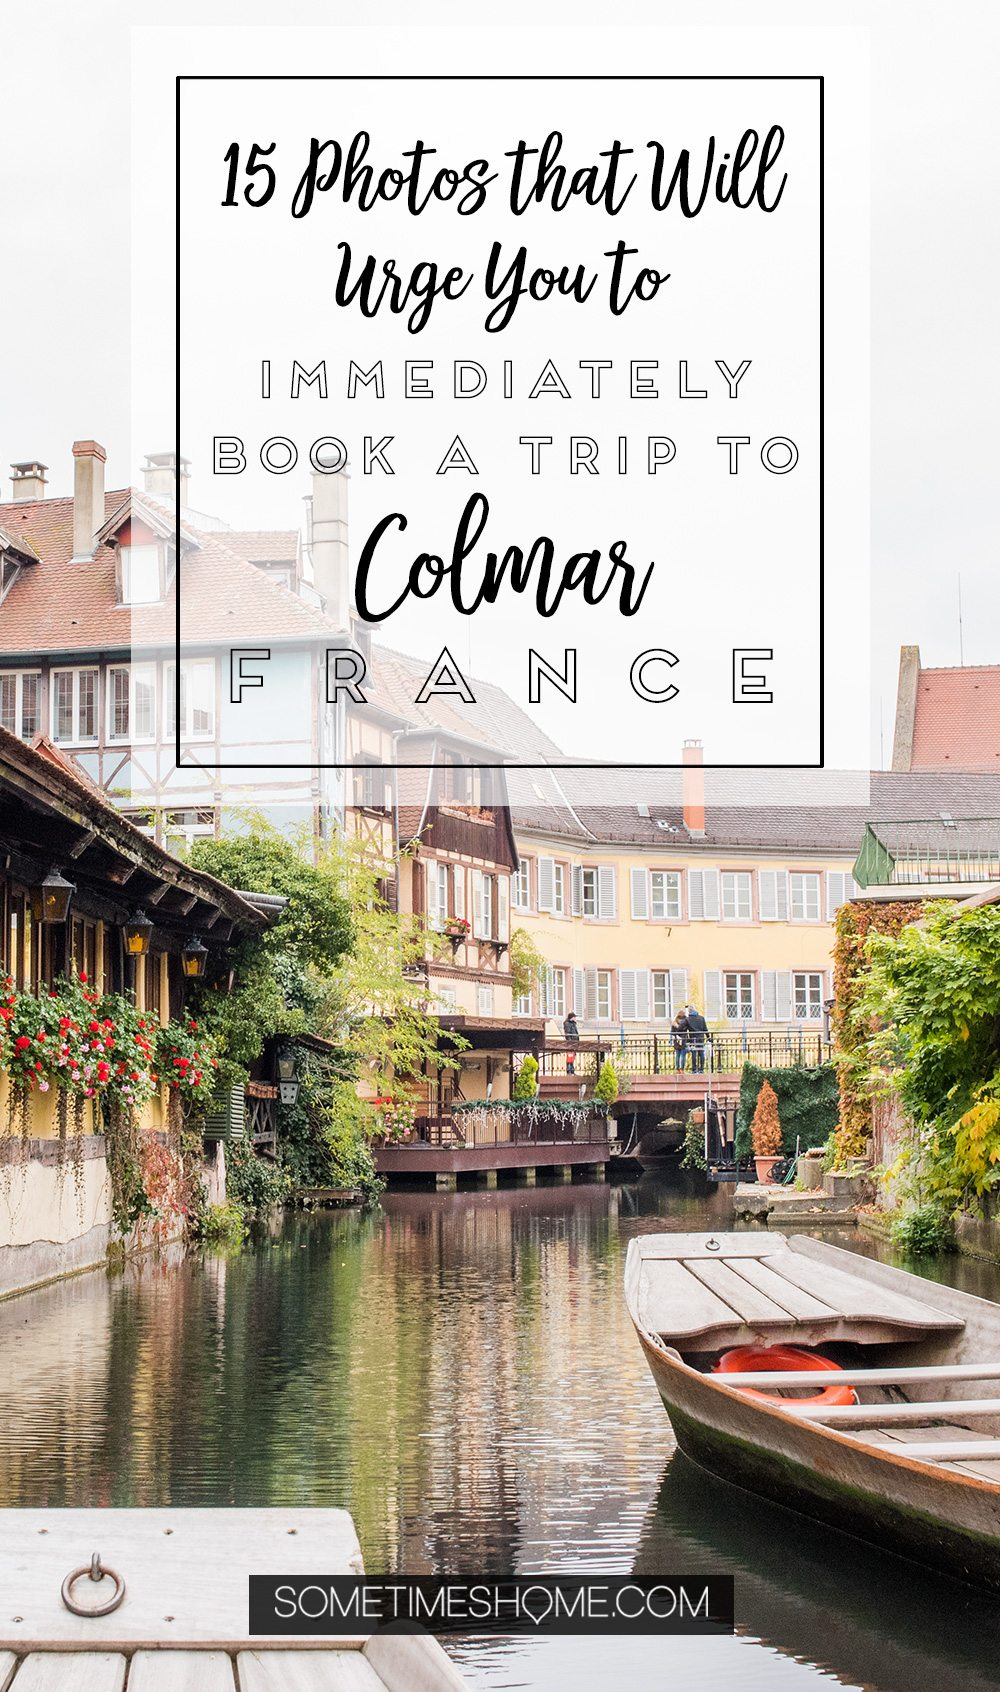 Photography of Colmar, France with scenery liken to Disney's Beauty and the Beast theatrical set design and scenery. These travel photos will inspire you to visit to this fairy tale location no matter if it's spring, winter or summer. Check out this beautiful place, including Little Venice, in this inspiring blog post! #AlsaceFrance #ColmarFrance #StorybookVillage